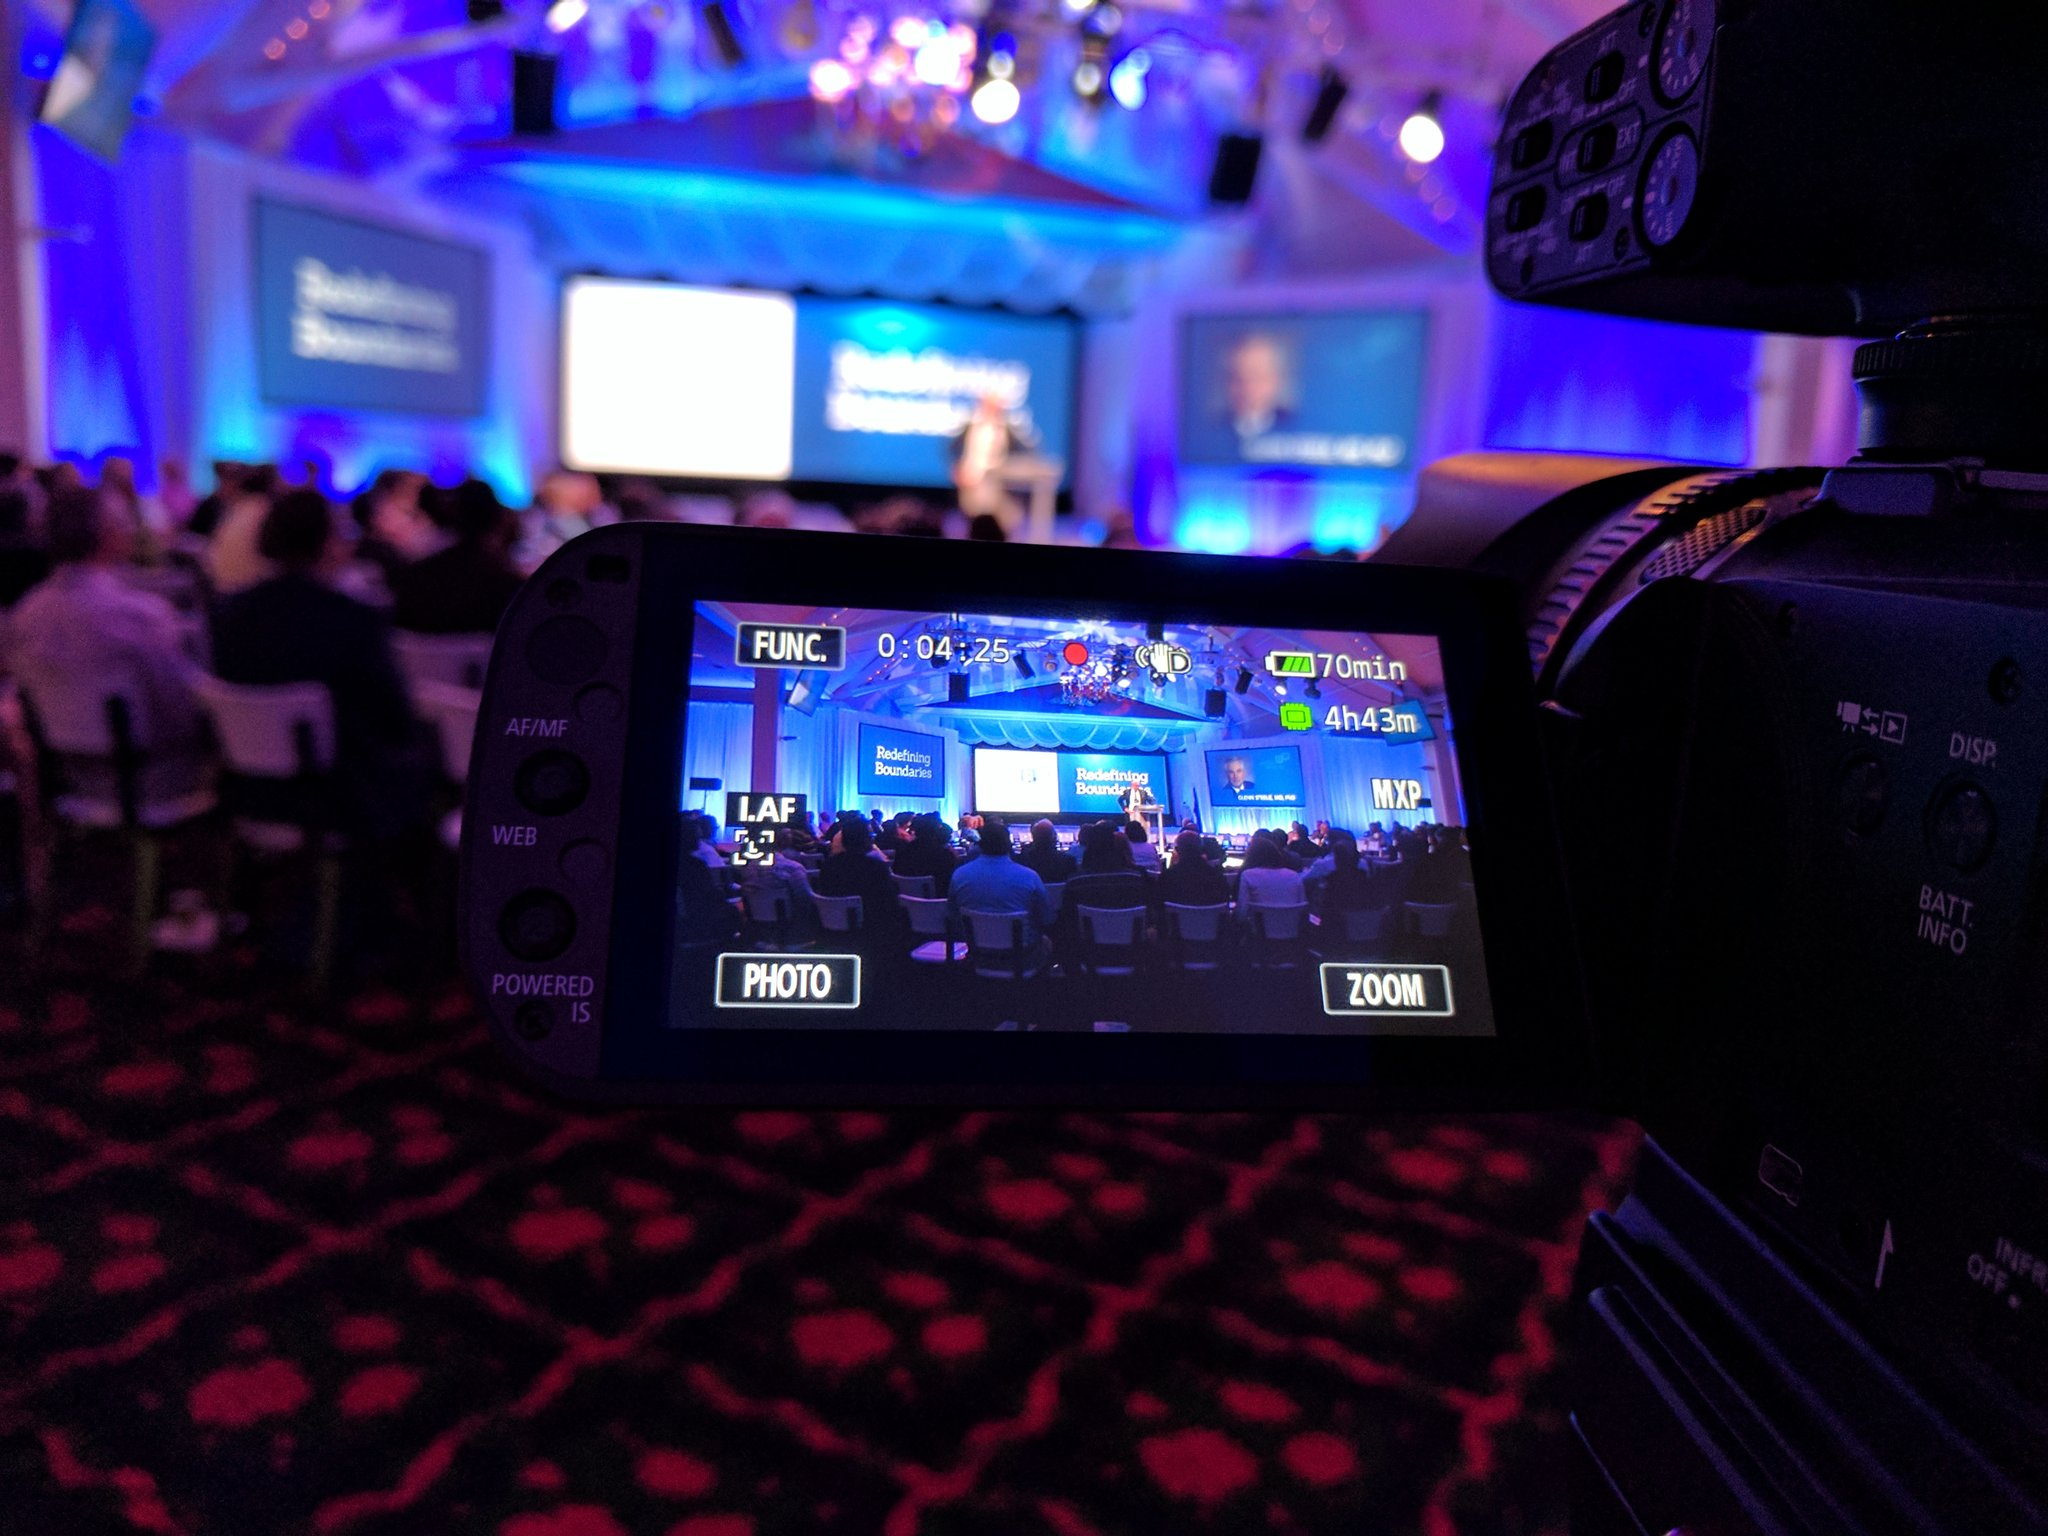 Getting started this morning at #MHAannual https://t.co/hNYtw7W3Wb